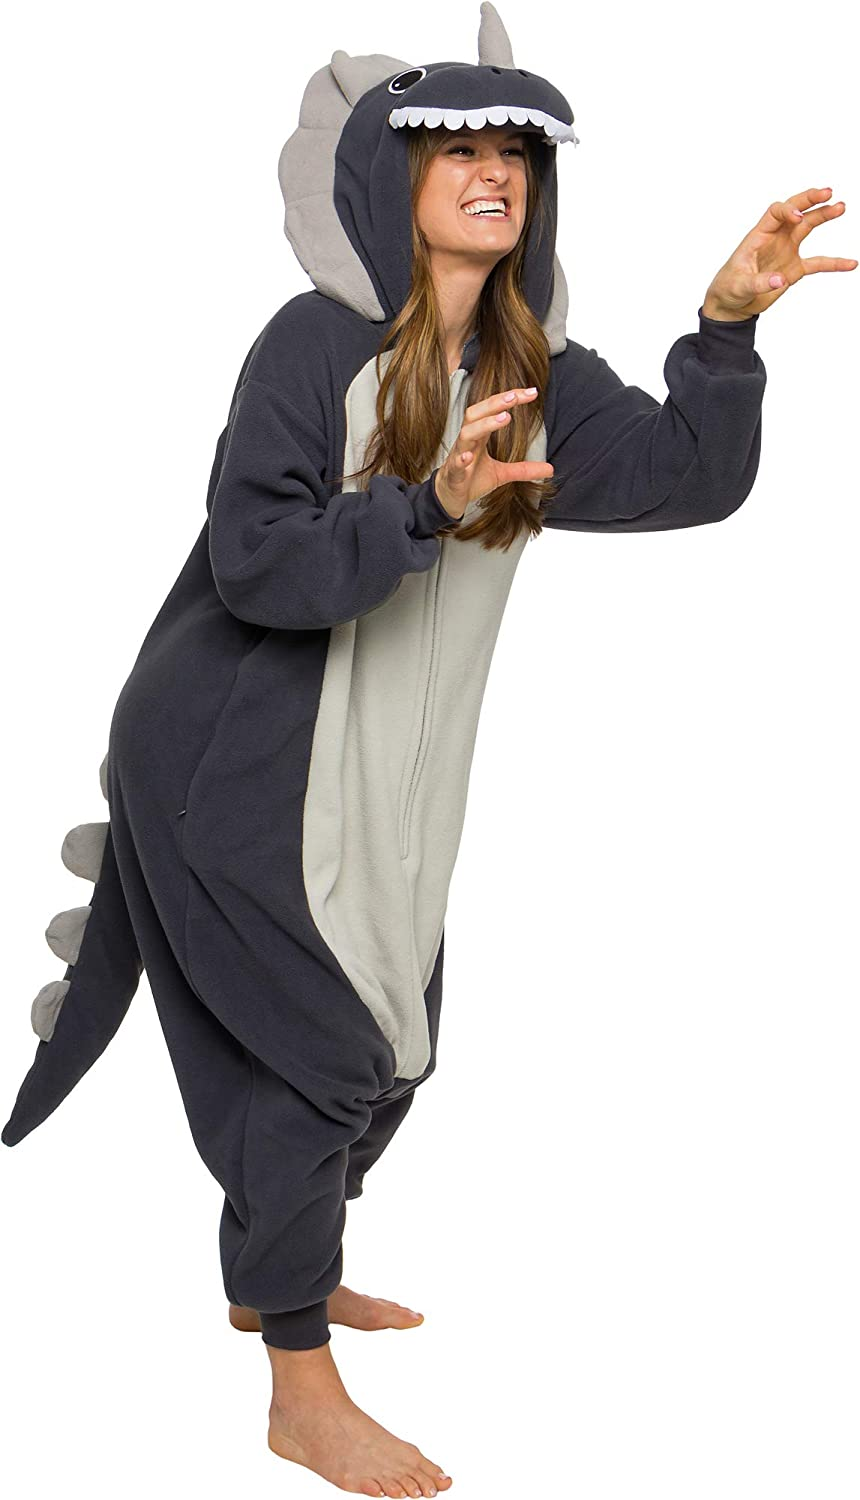 Silver Lilly Triceratops Costume Pajamas - Unisex Adult One Piece Halloween Dinosaur Jumpsuit